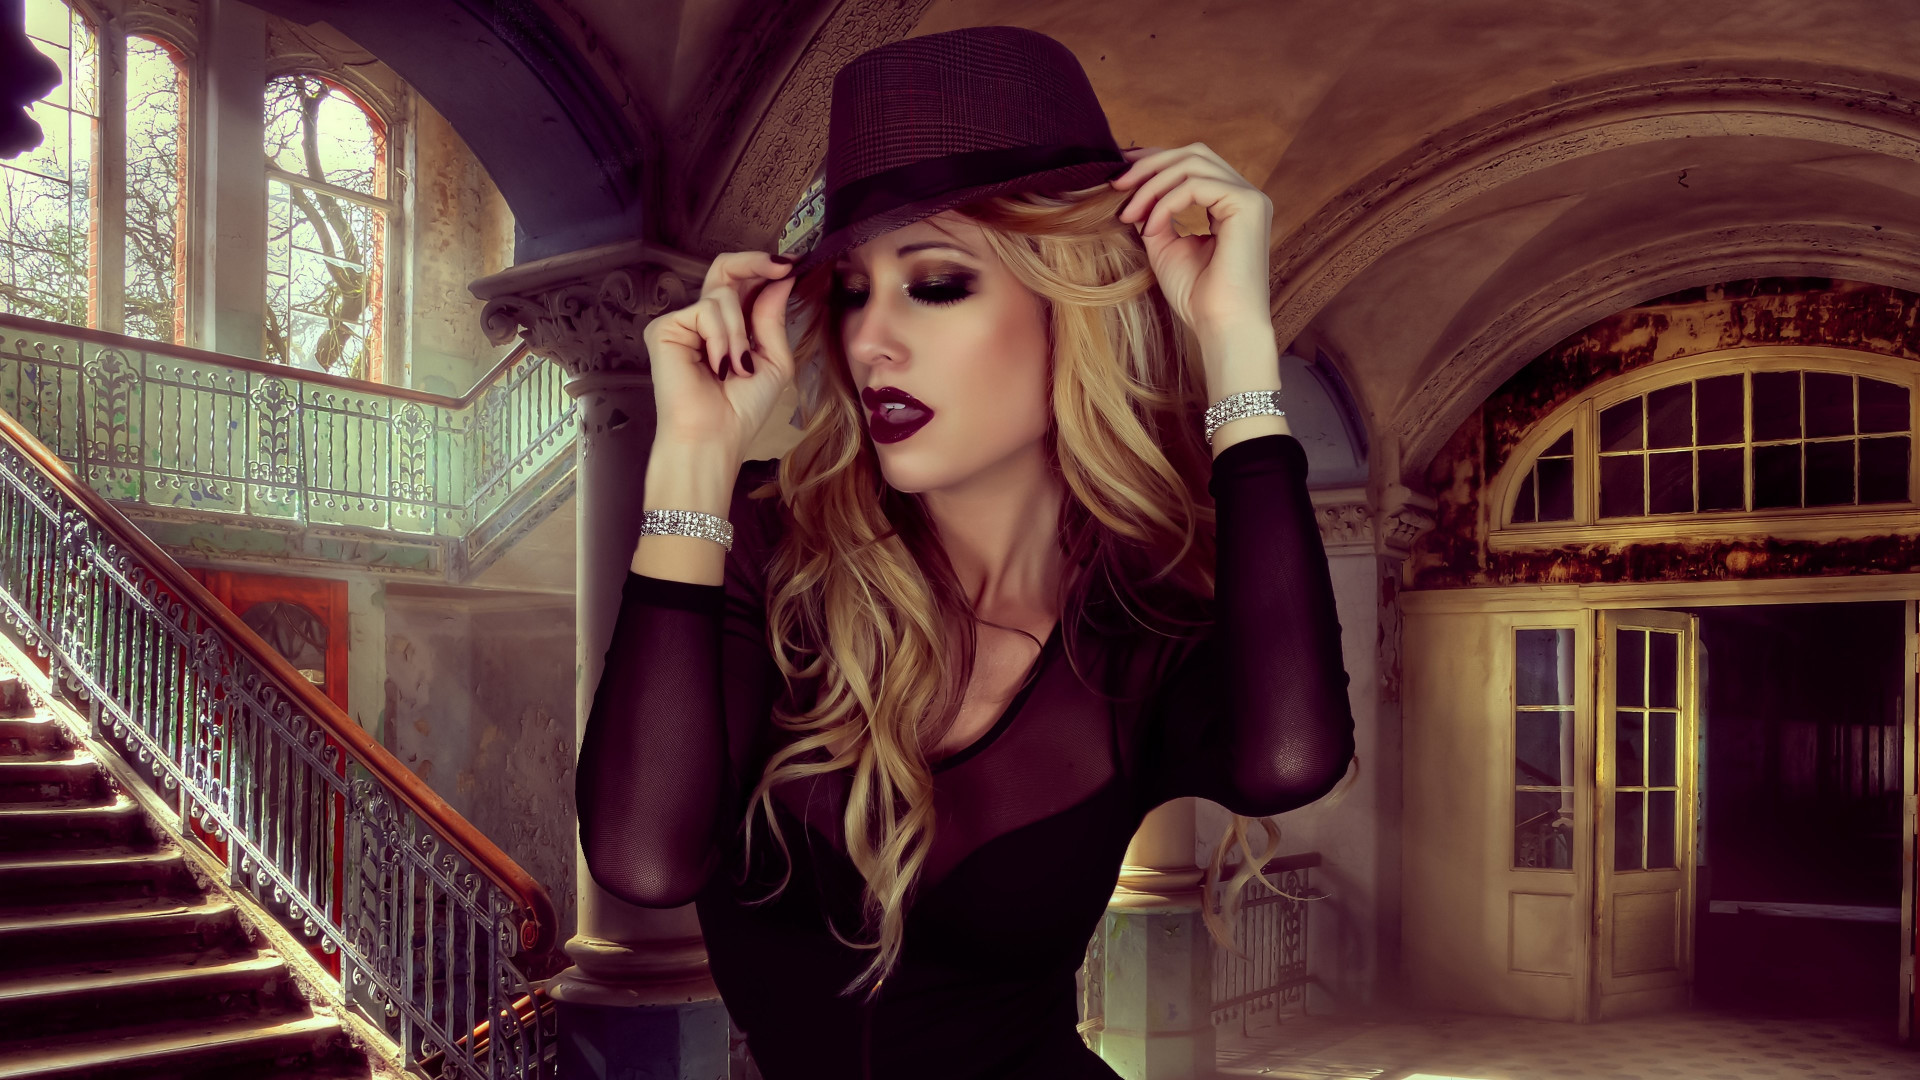 Glamour, hat, portrait, blonde, model wallpaper 1920x1080